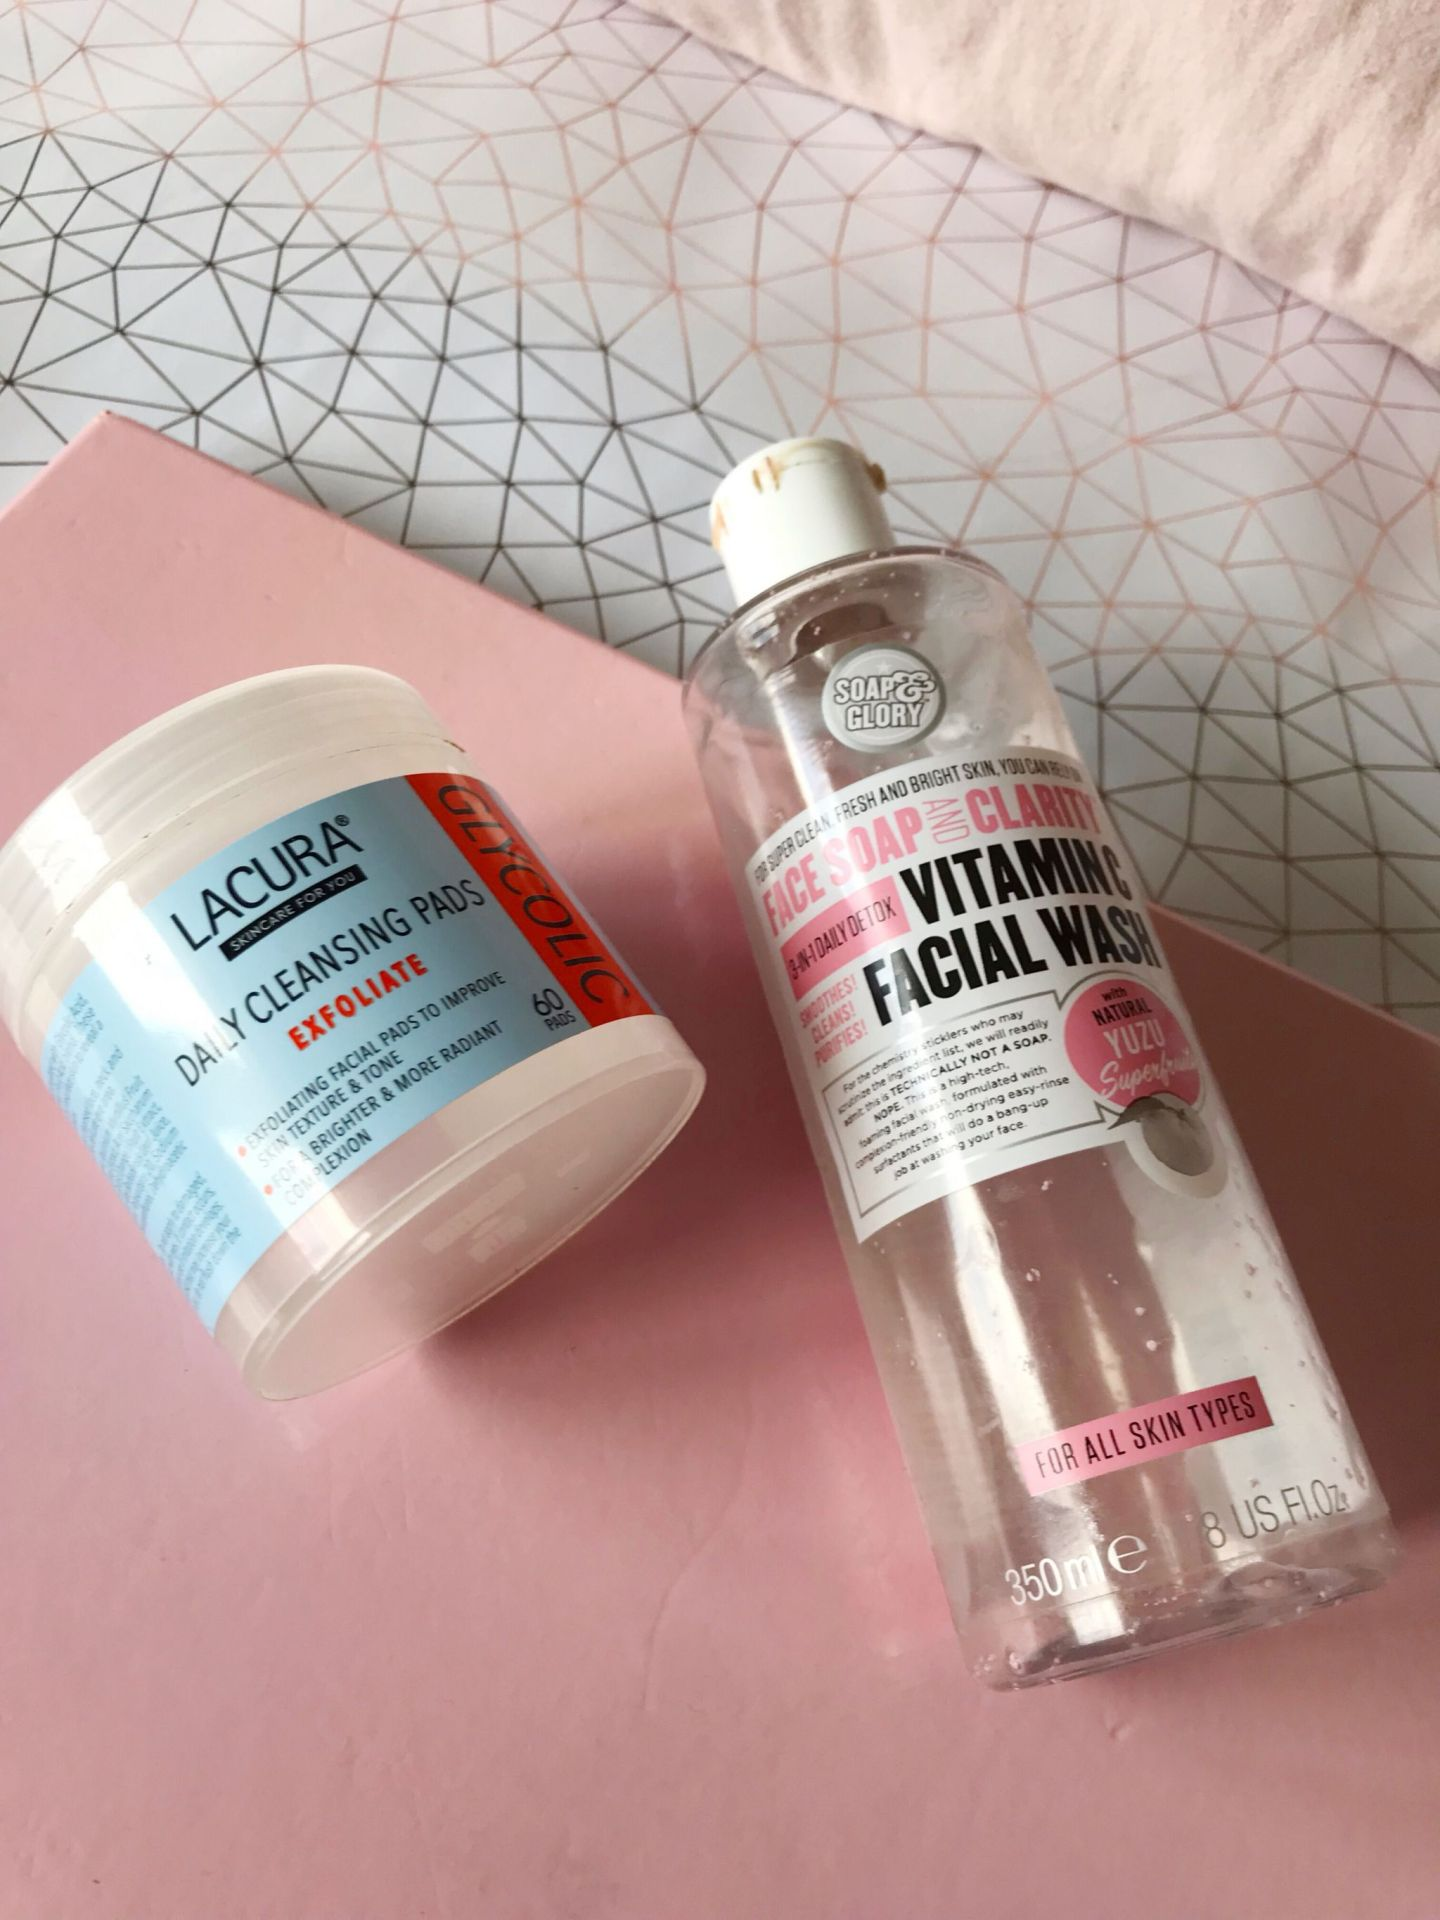 Lacura Cleansing pads and Soap and Glory Daily Wash